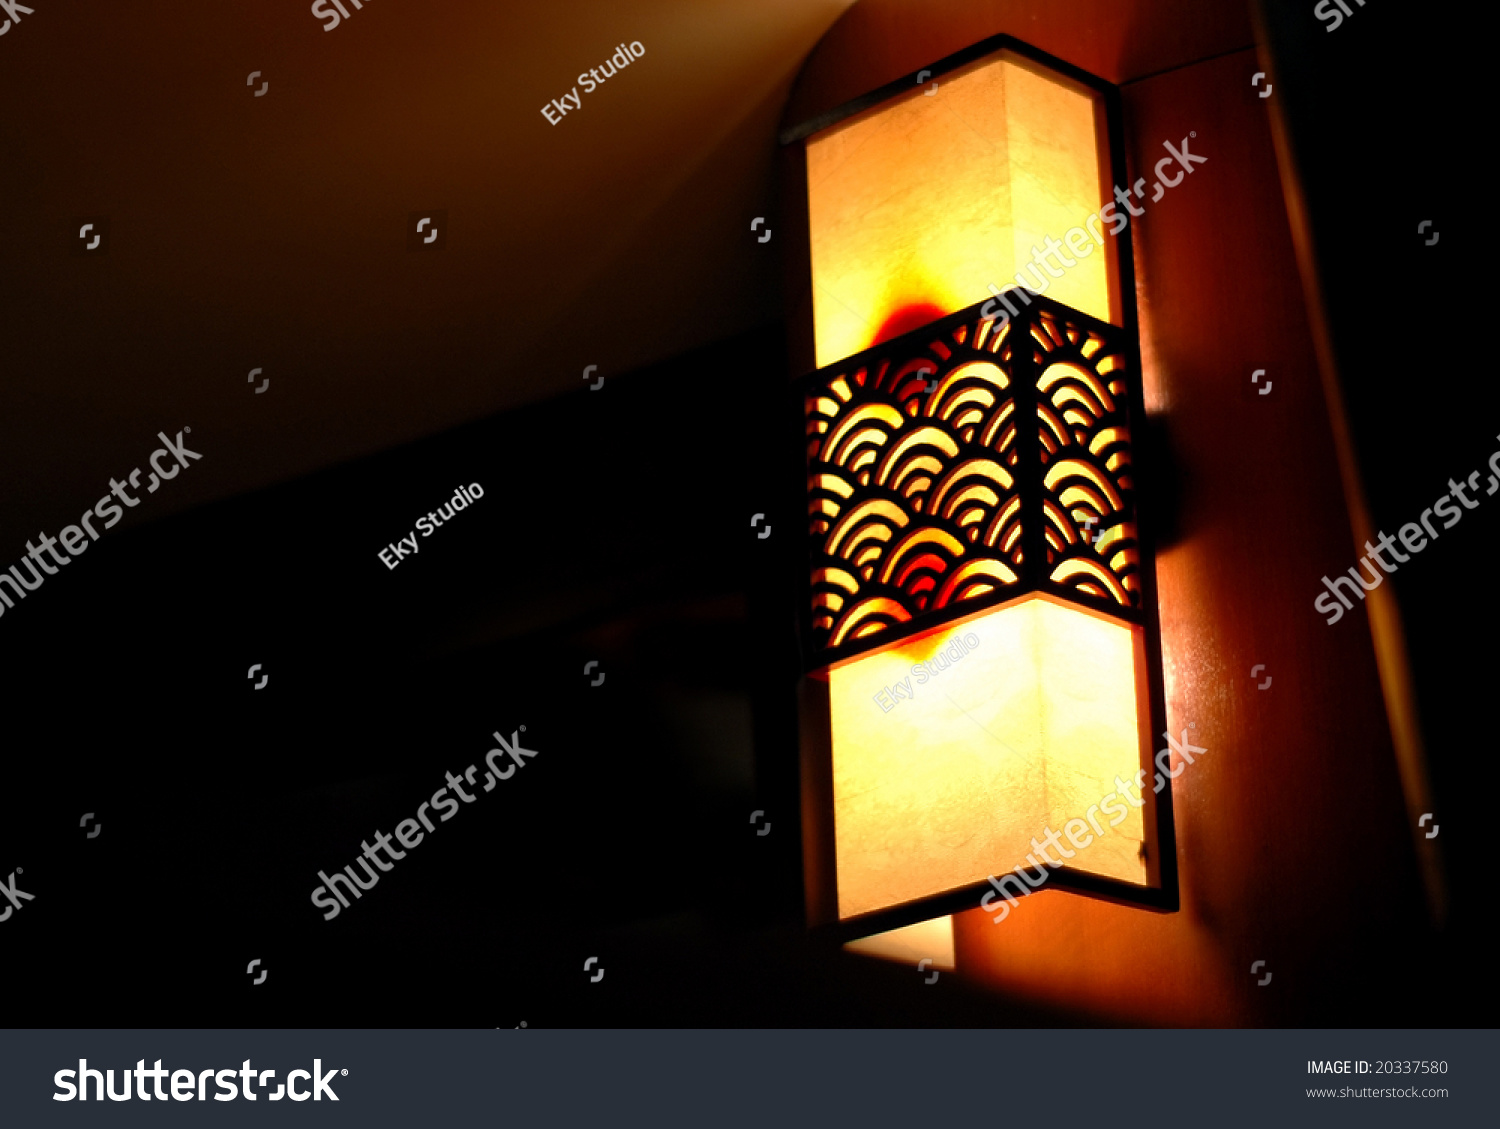 Japanese wall lamp stock photo download now 20337580 shutterstock japanese wall lamp aloadofball Images